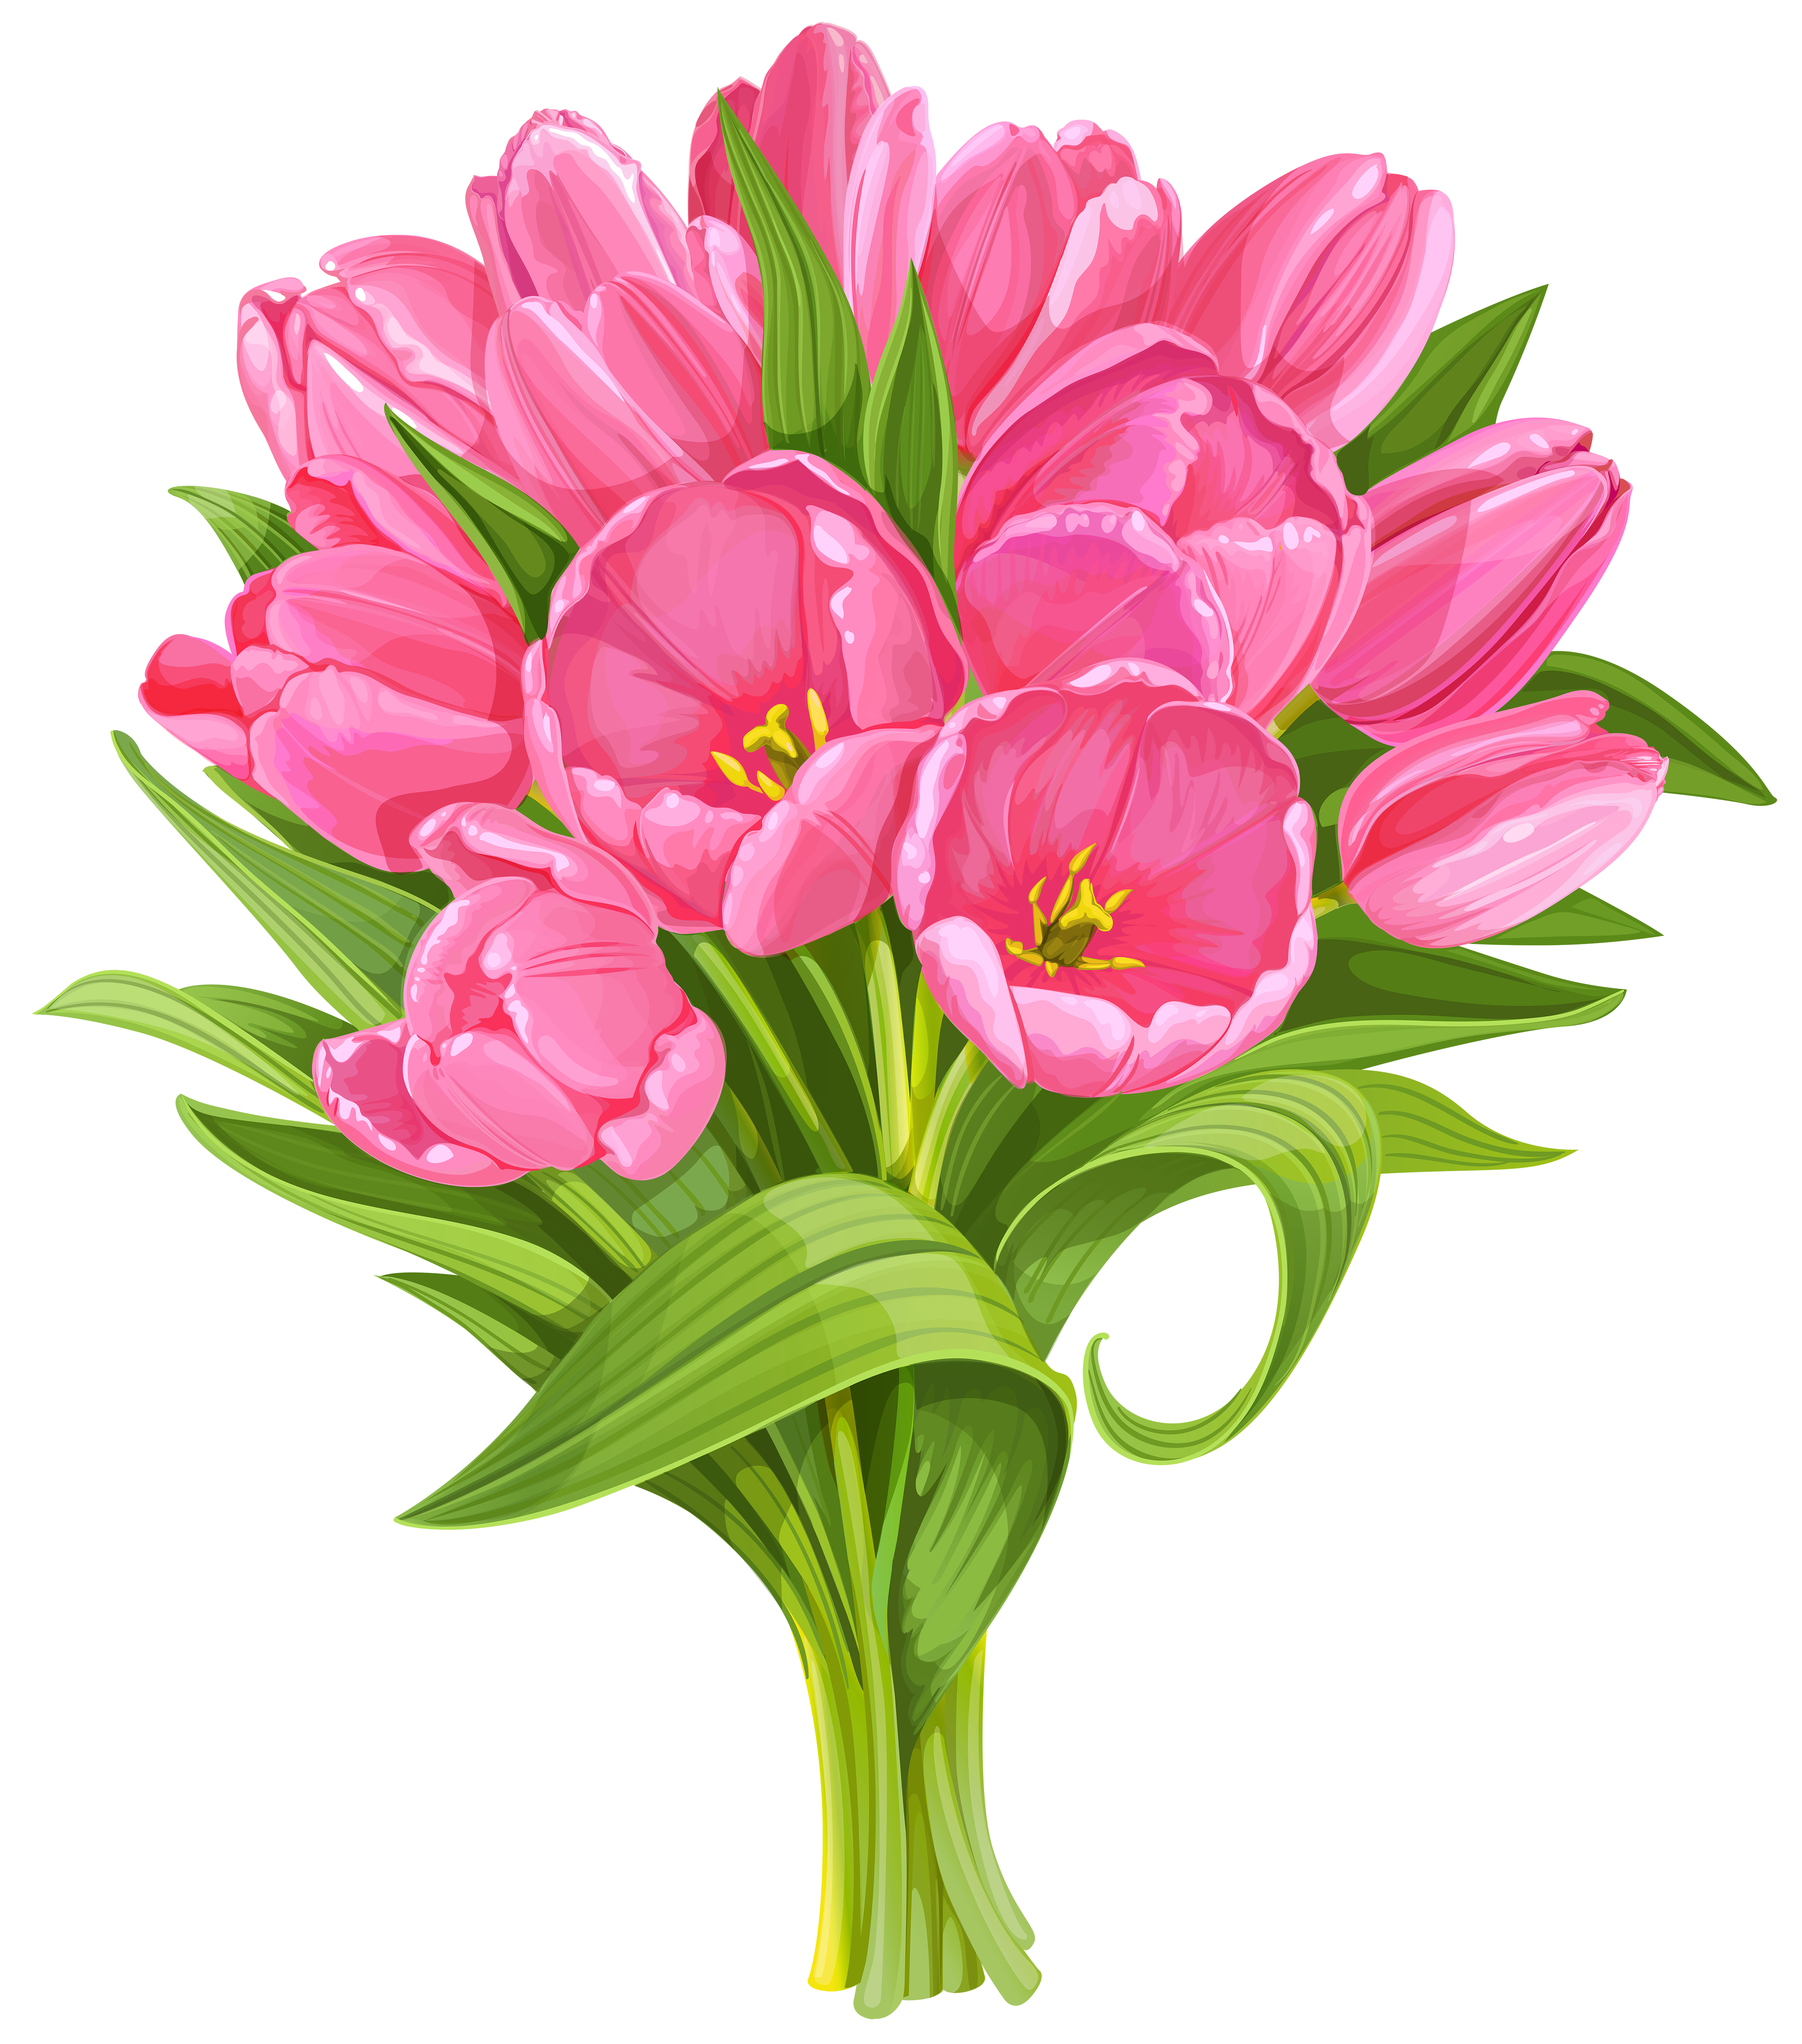 Tulip no flower cliparts. Daffodil clipart transparent background